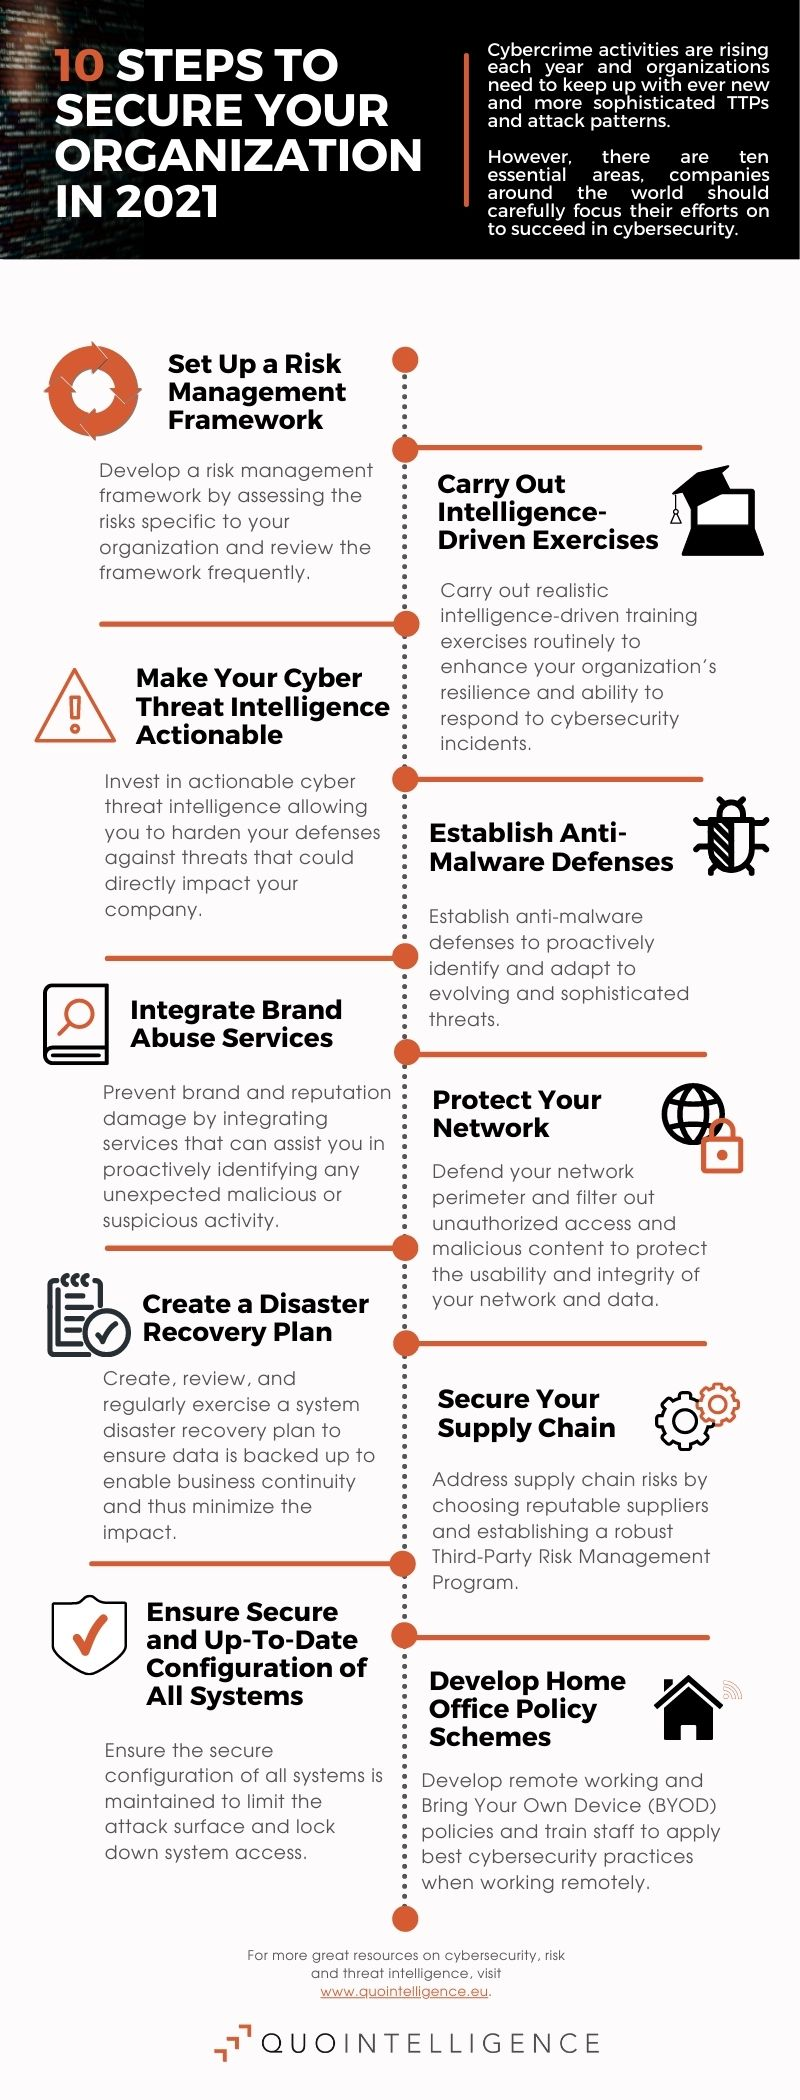 10 steps to take for cybersecurity